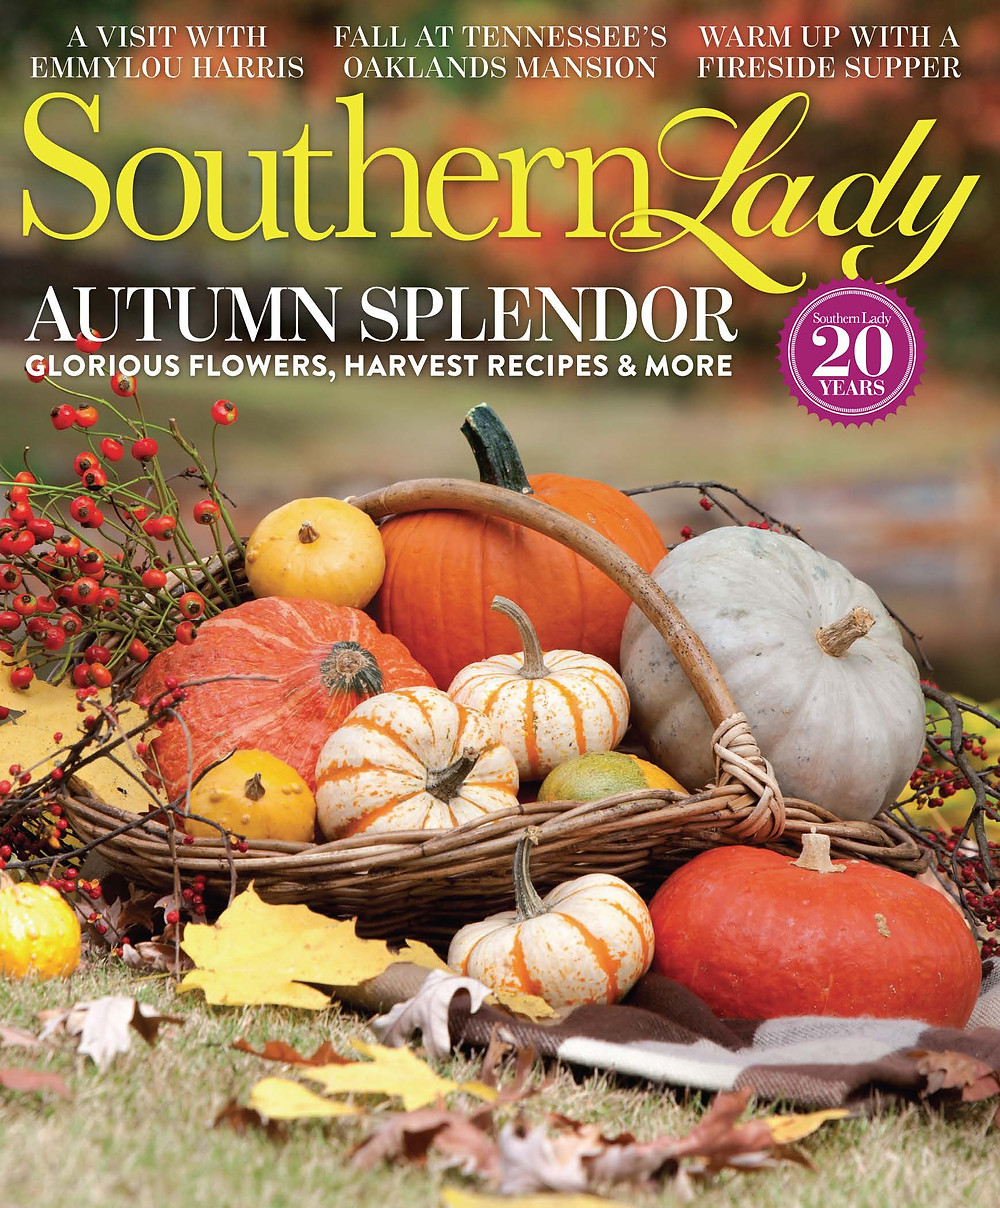 Southern Lady magazine features Kids to Love